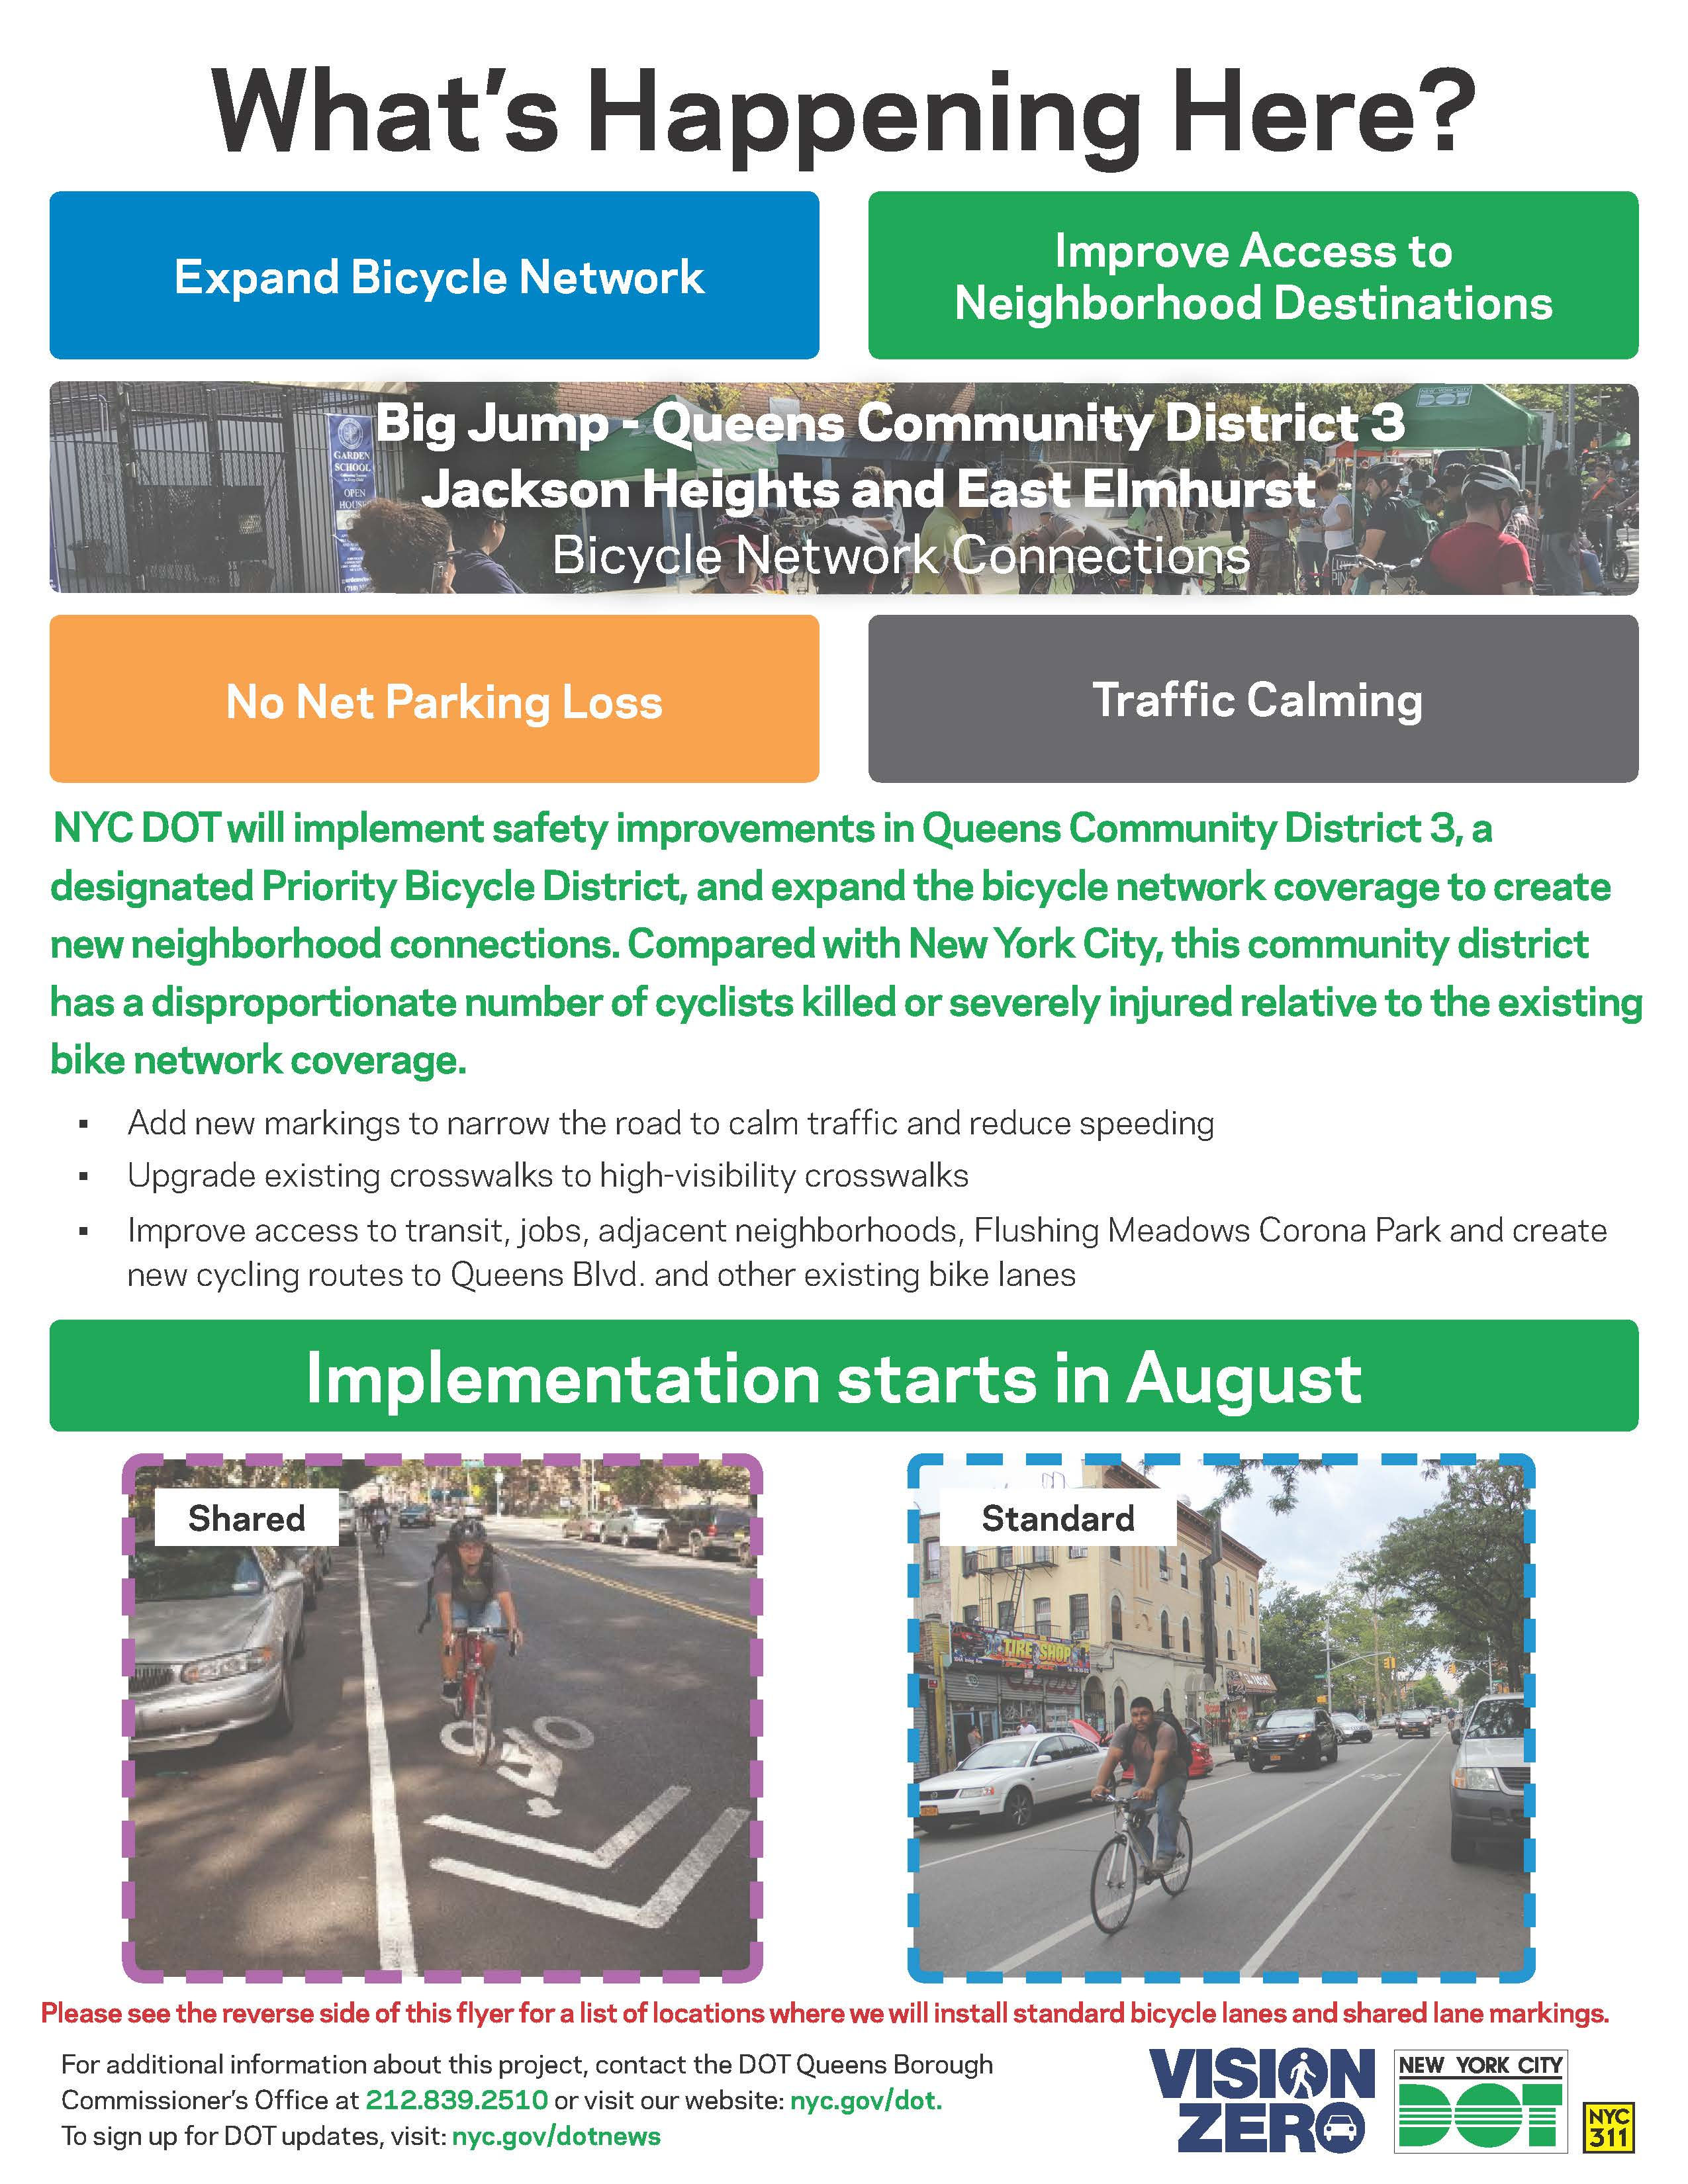 Bike Network Installation Starts in August 2019 | Projects